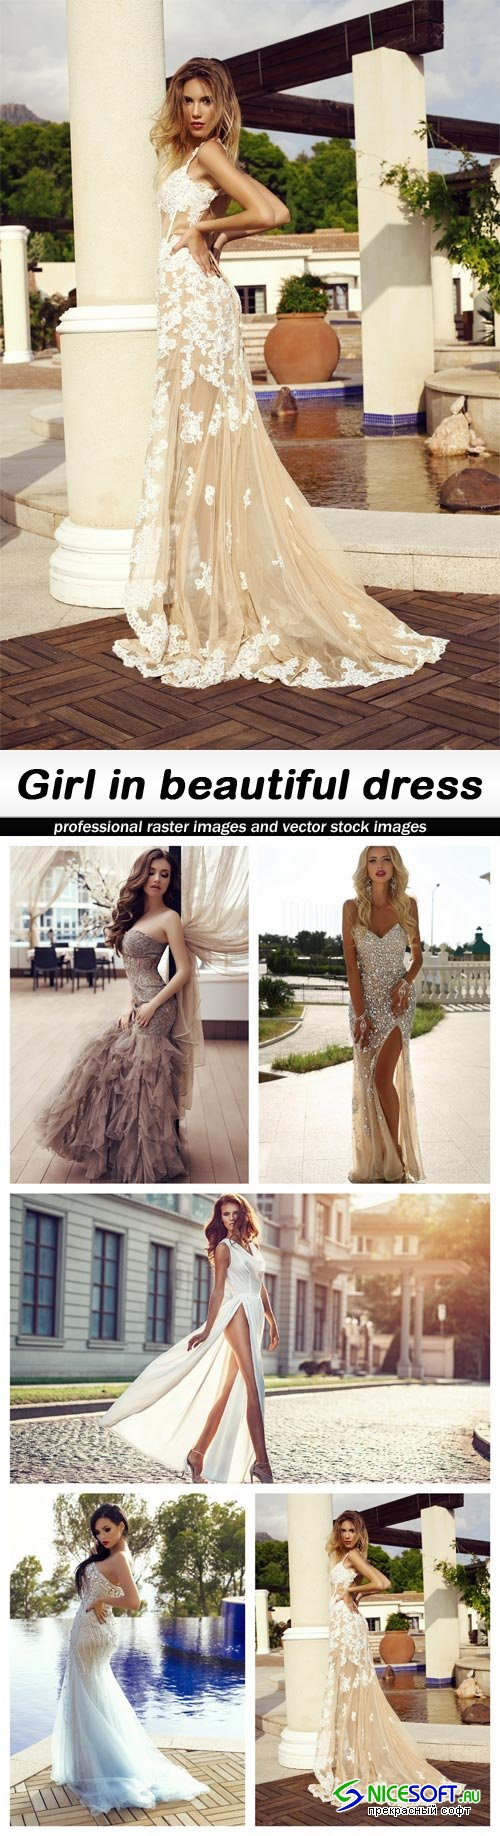 Girl in beautiful dress - 5 UHQ JPEG